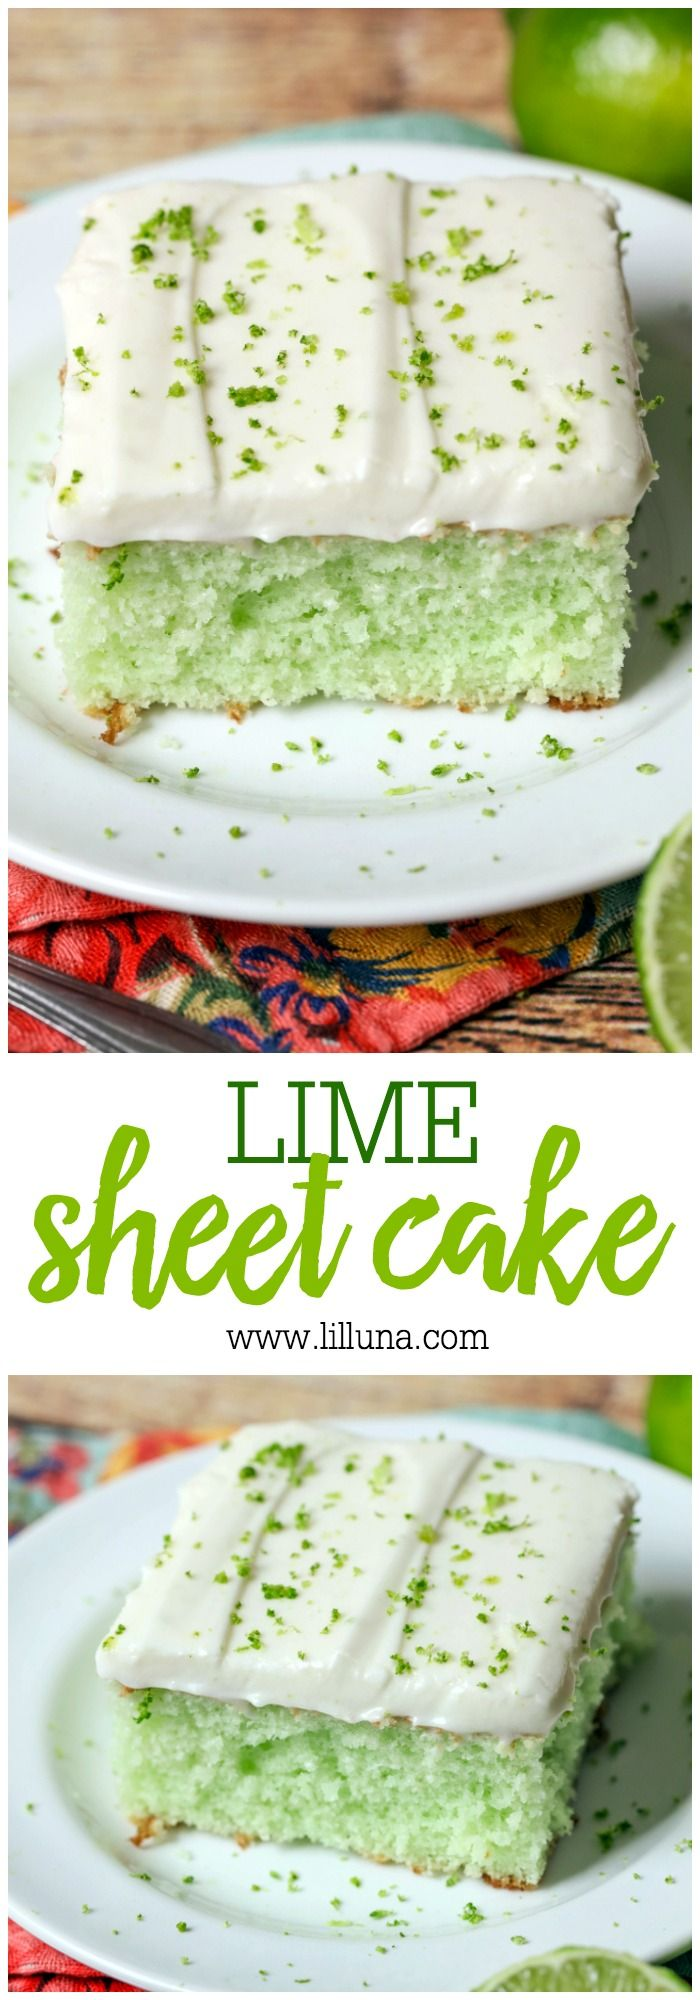 DELICIOUS Lime Sheet Cake - a super soft and moist lime cake with homemade lime buttercream frosting! Mom's birthday!